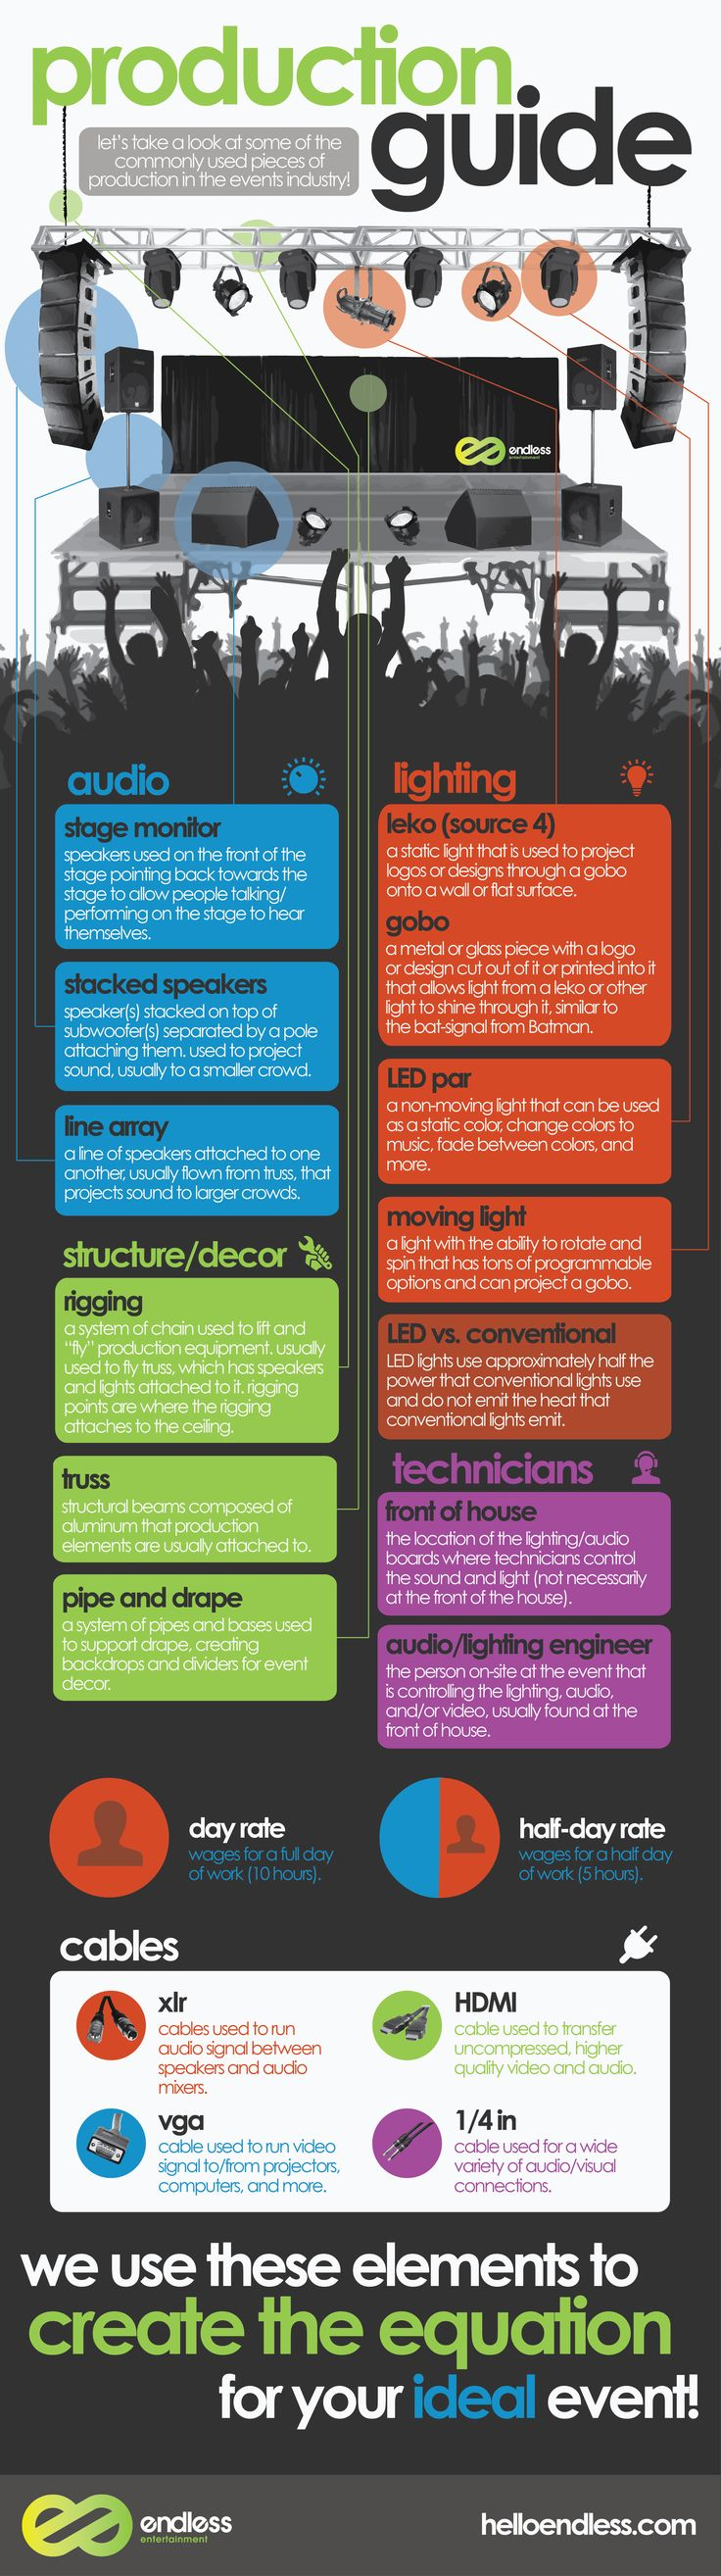 Production_Guide_Infographic-(PNG).png (2917×10417)